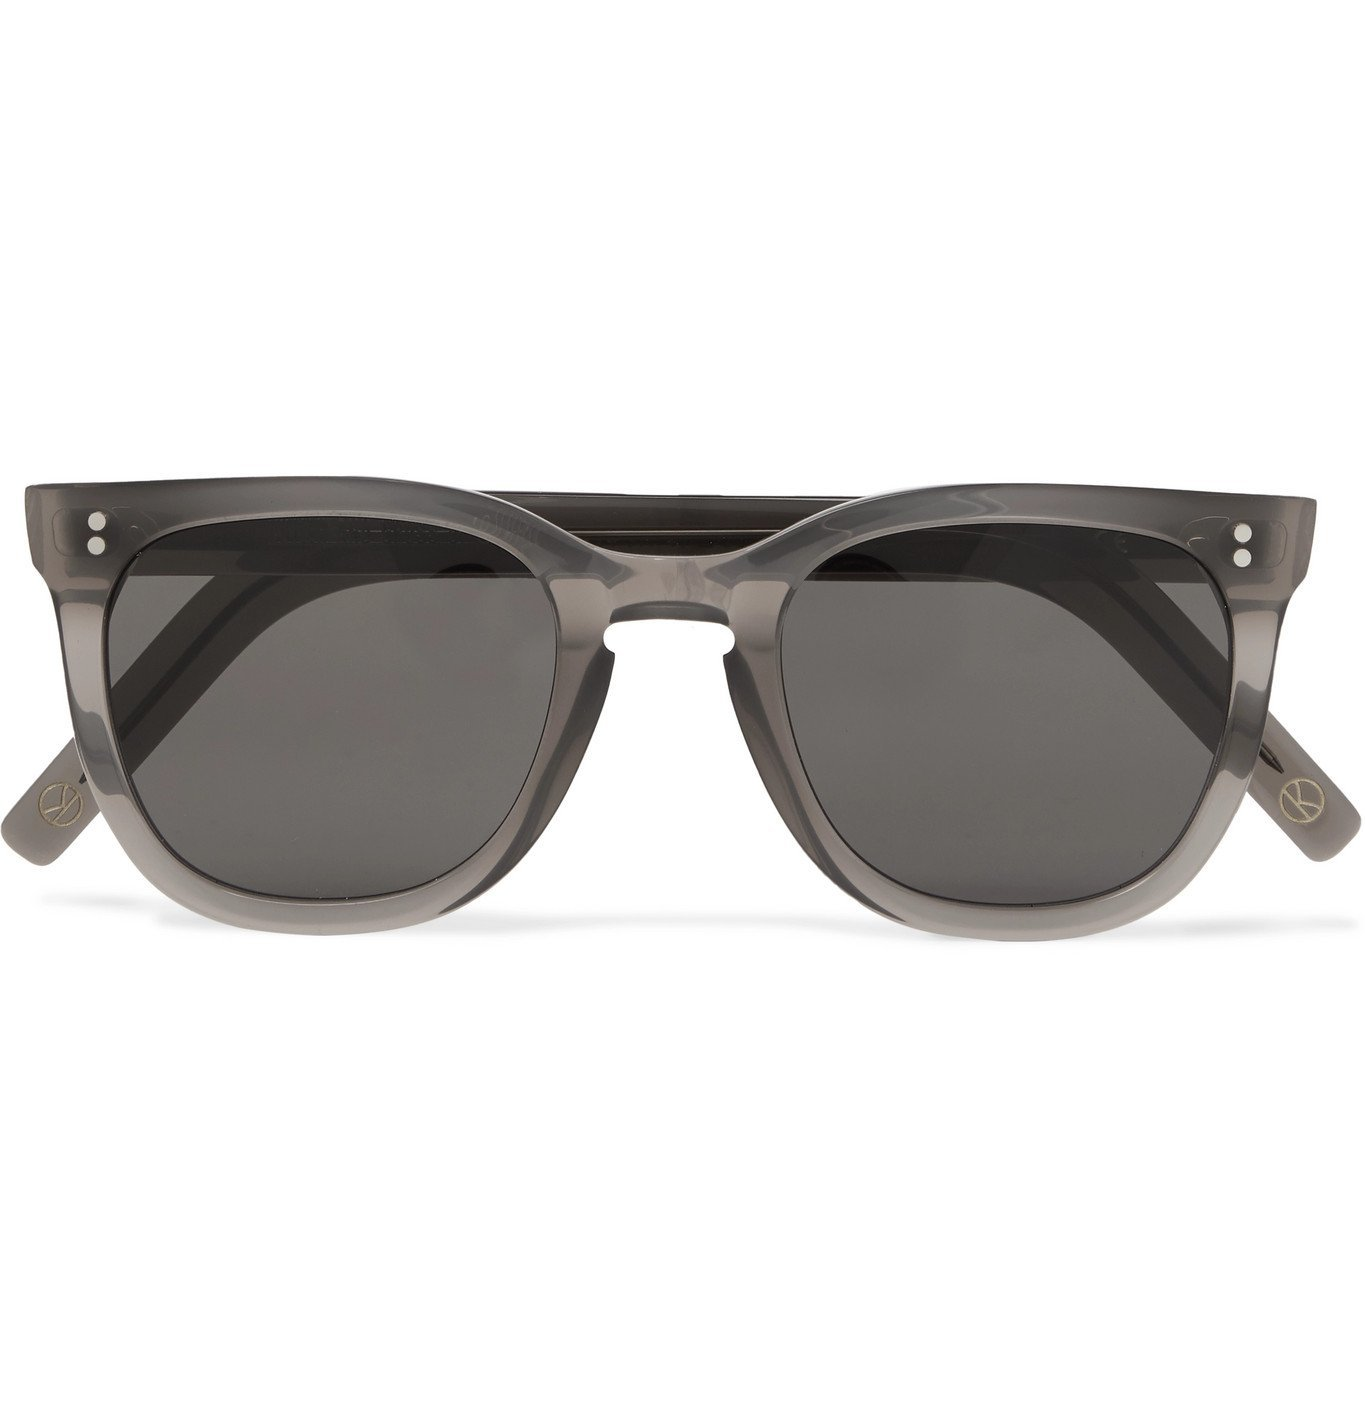 Photo: Kingsman - Cutler and Gross D-Frame Acetate Sunglasses - Gray